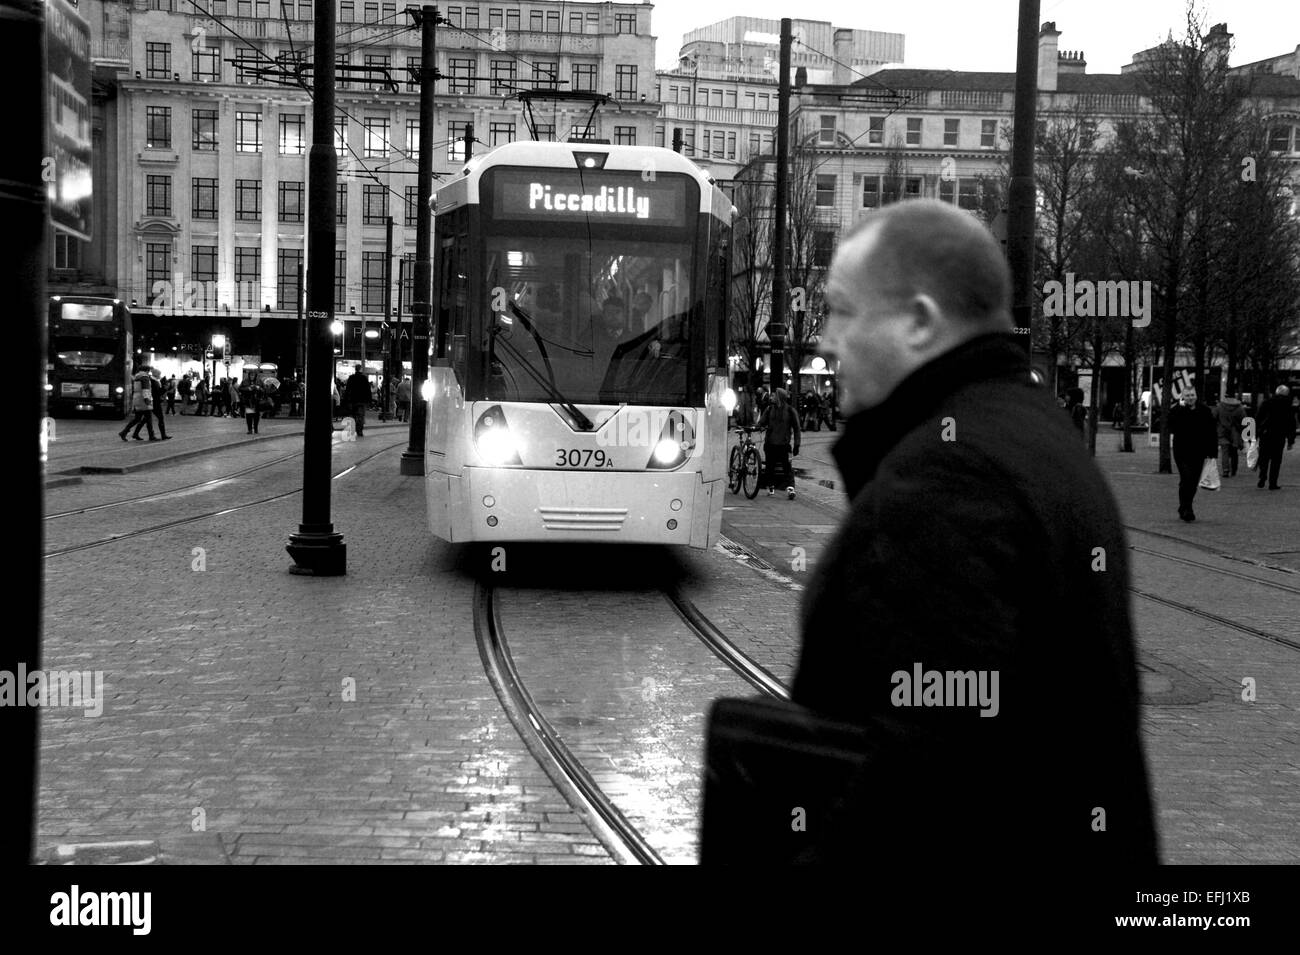 Manchester Lancashire UK - Man crosses the street in front of a city centre tram in Piccadilly Gardens January 2015 - Stock Image